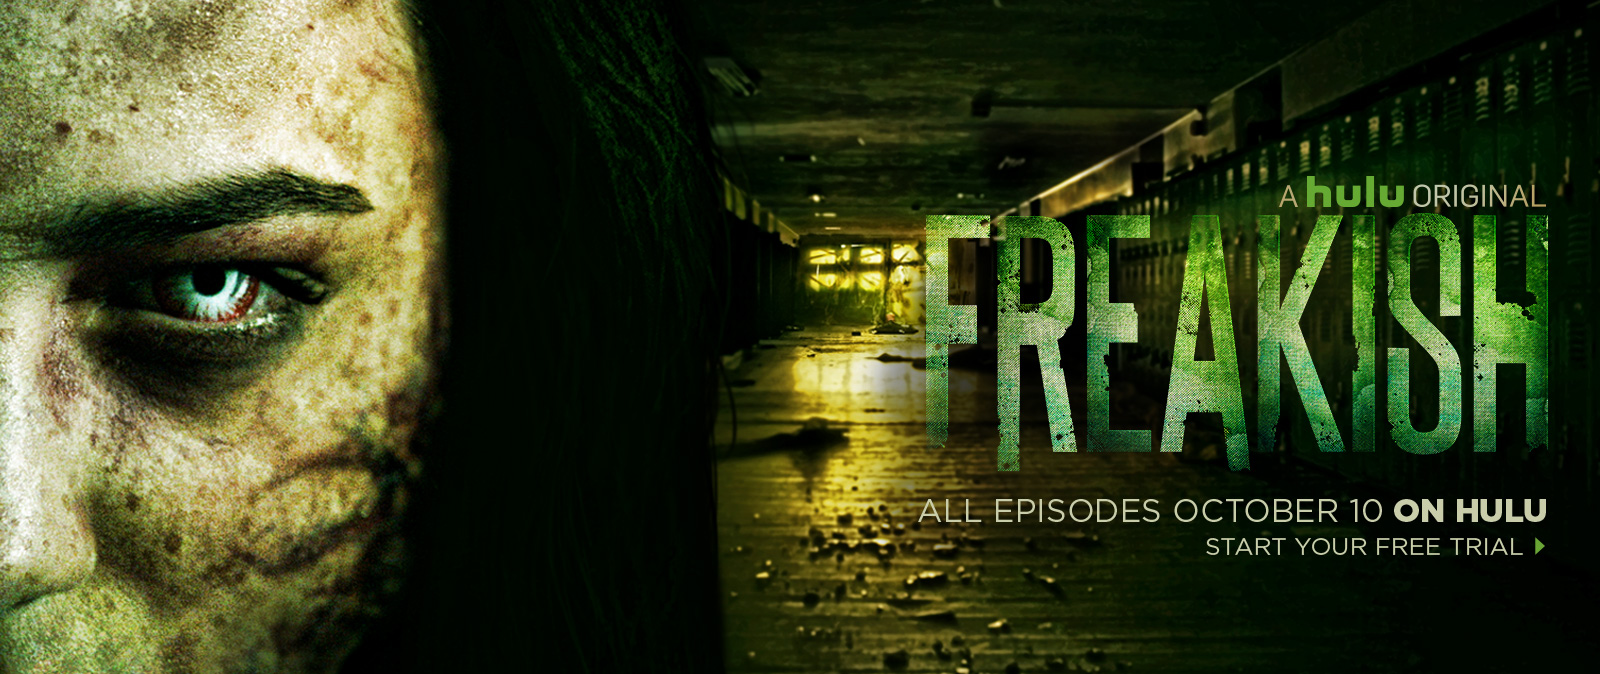 Freakish TV Show on Hulu: Season Two Renewal - canceled TV